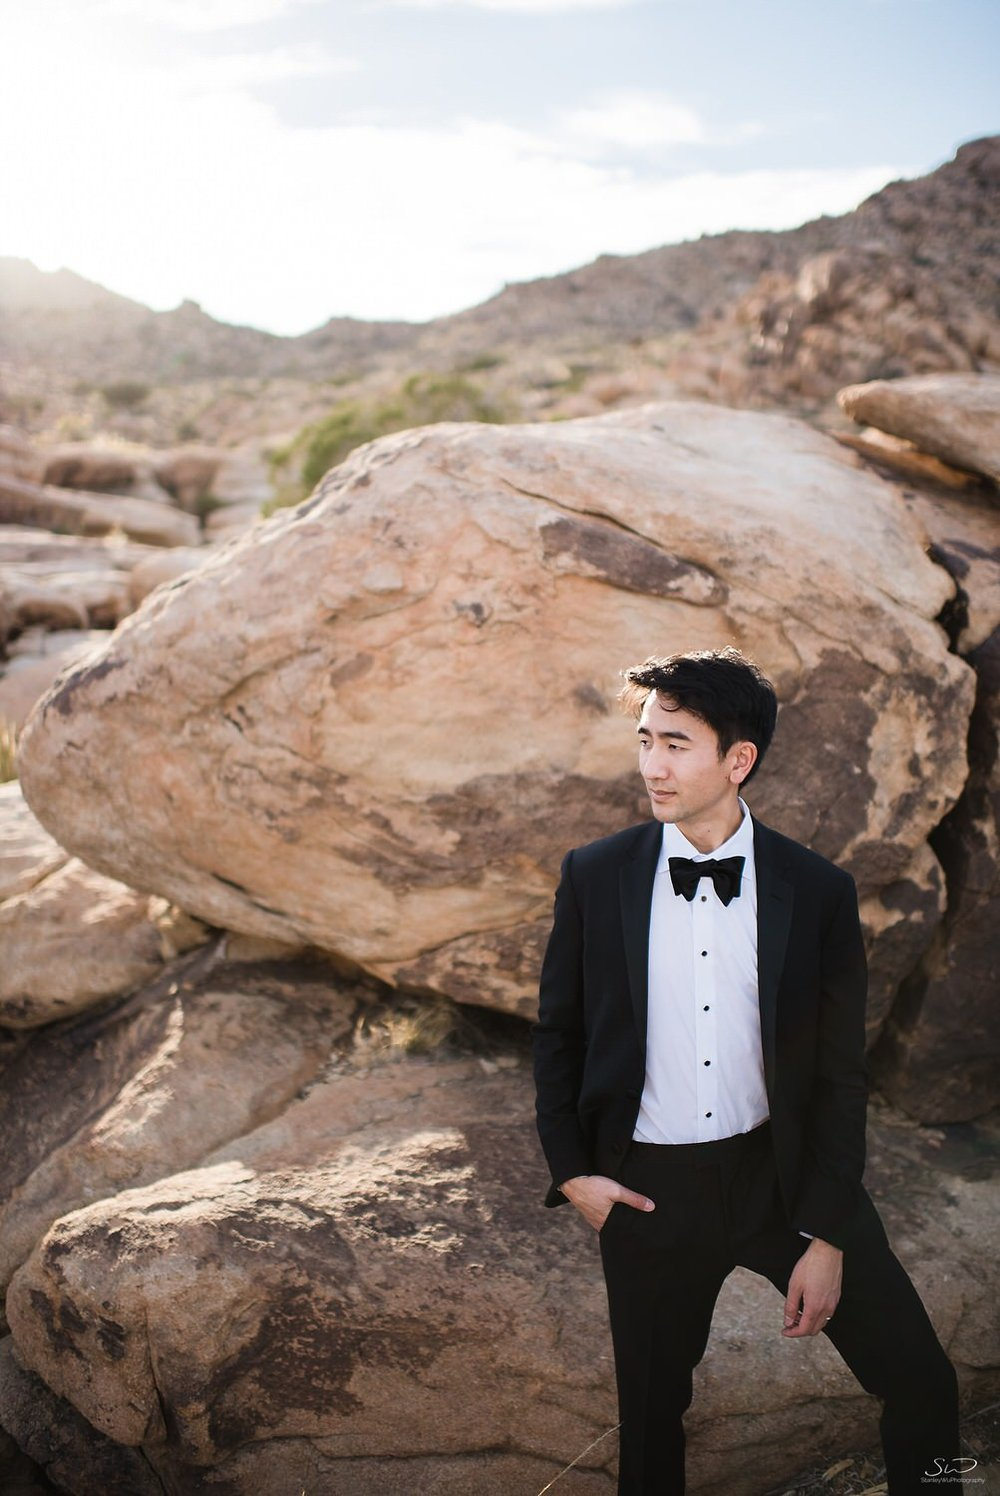 Groom in tux posing on rocks | Joshua Tree Desert Wedding, Engagement, Elopement Inspiration